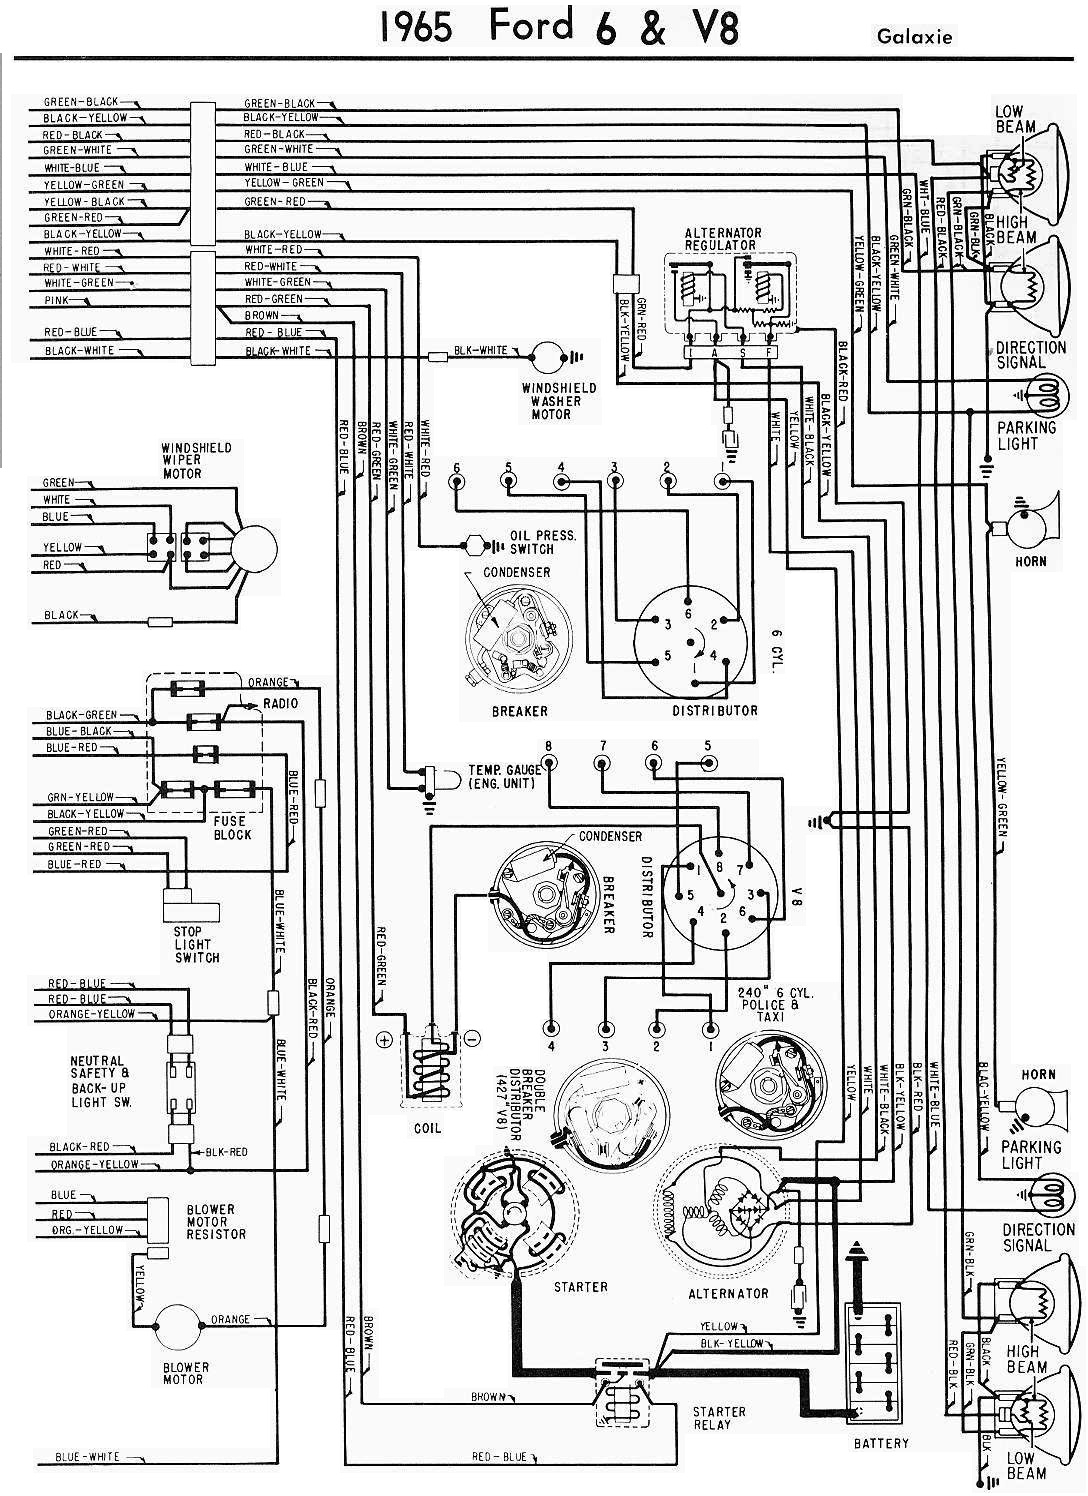 1963 ford f100 wiring diagram visio venn search results 1964 65 66 styleside tailgate